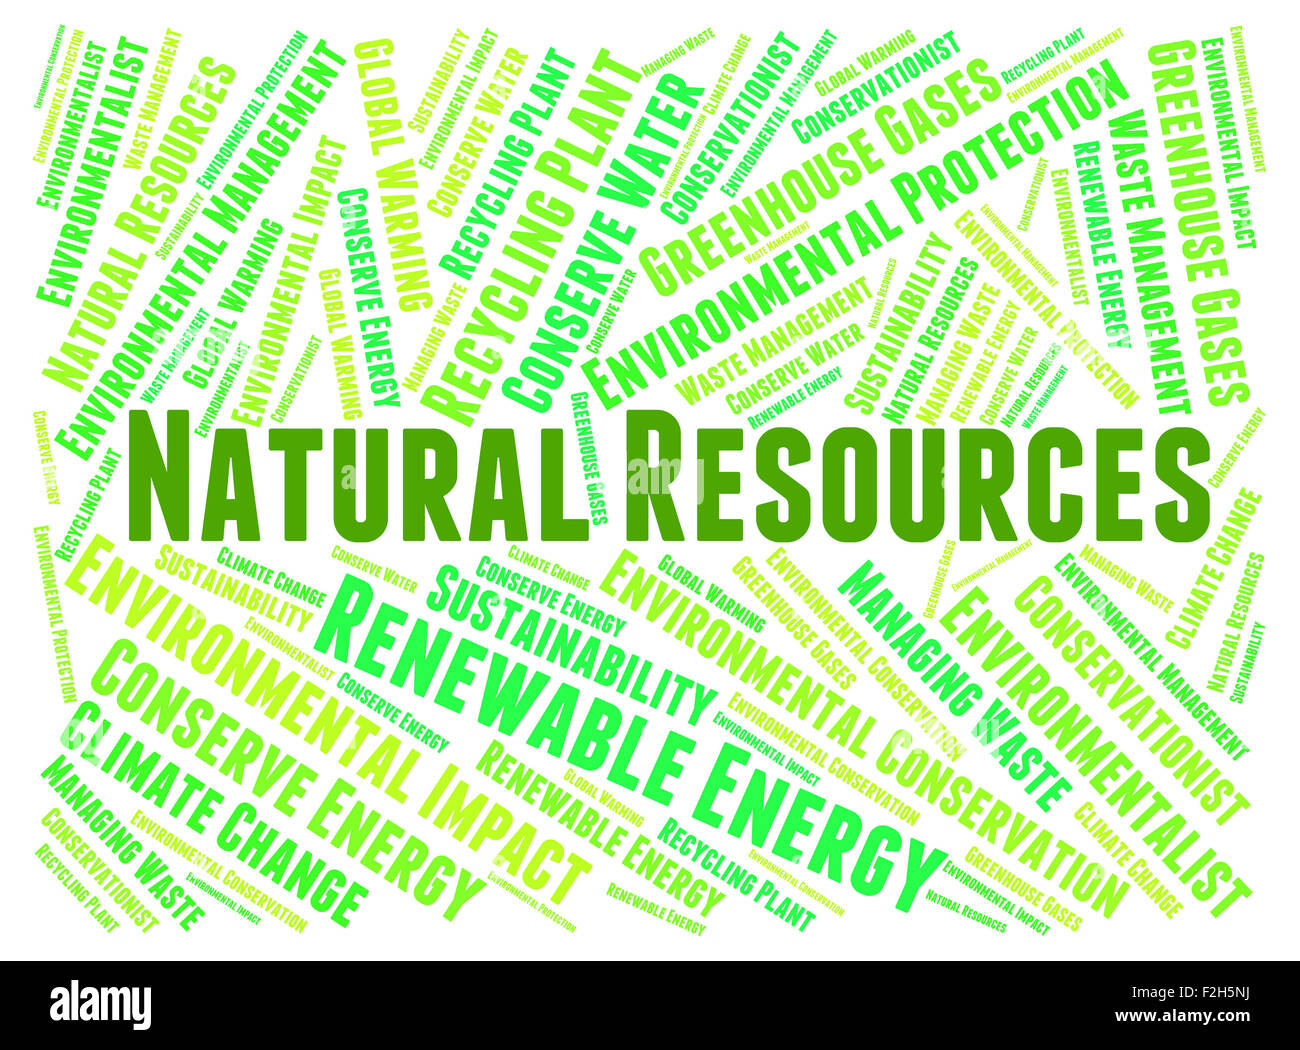 Natural Resources Showing Raw Material And Words Stock